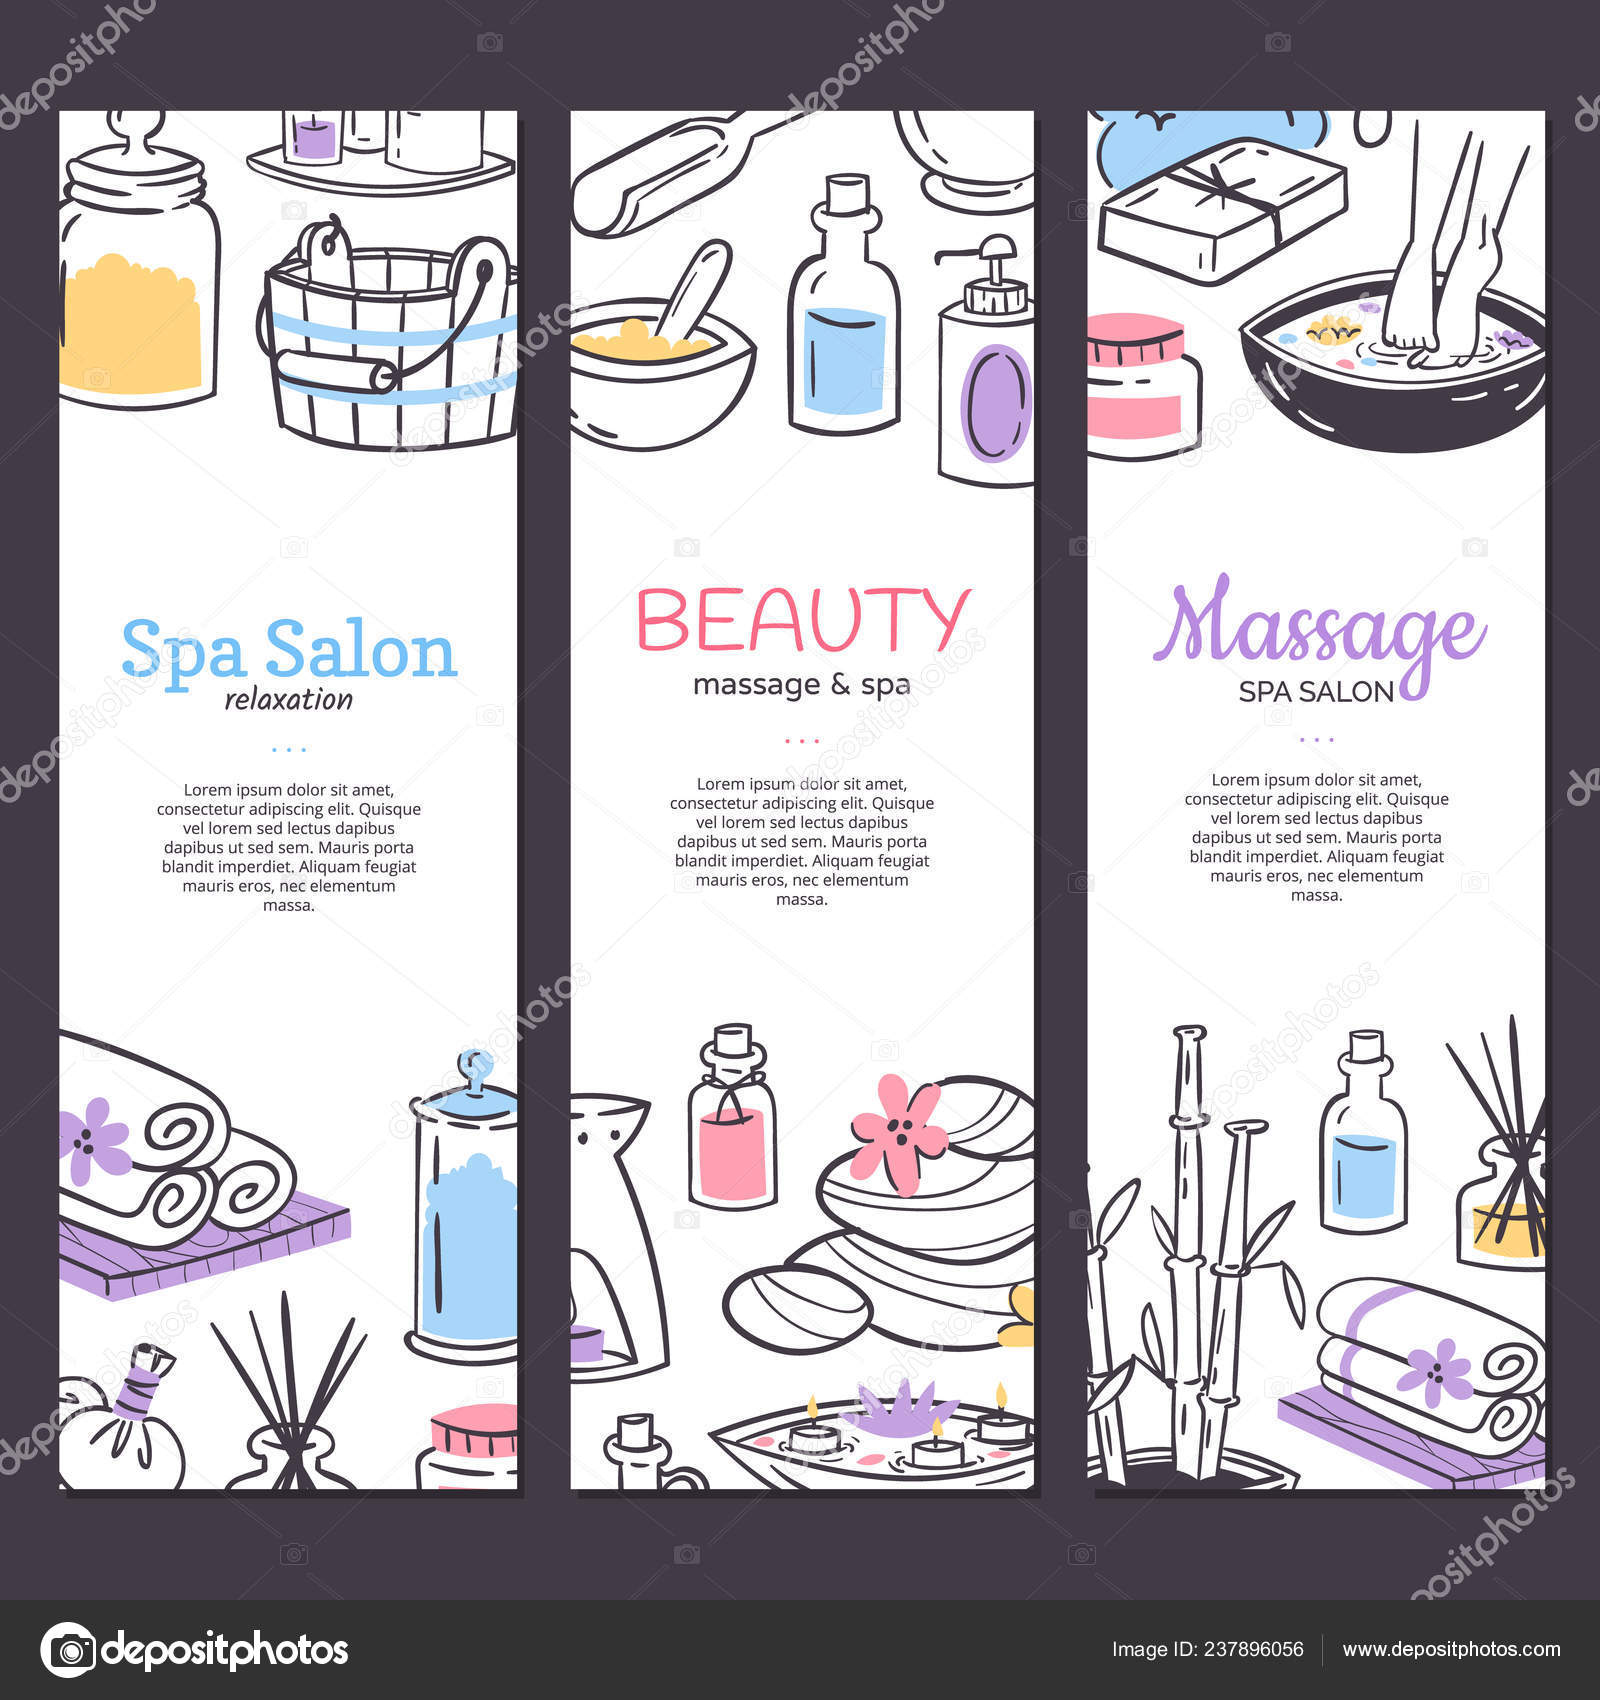 Background Cosmetics Shop Banner Spa Treatment Banner Background Design For Cosmetics Store Spa And Beauty Salon Organic Health Care Products Cosmetic Aromatherapy Body Health Care Vector Illustration Stock Vector C Vectorshow 237896056